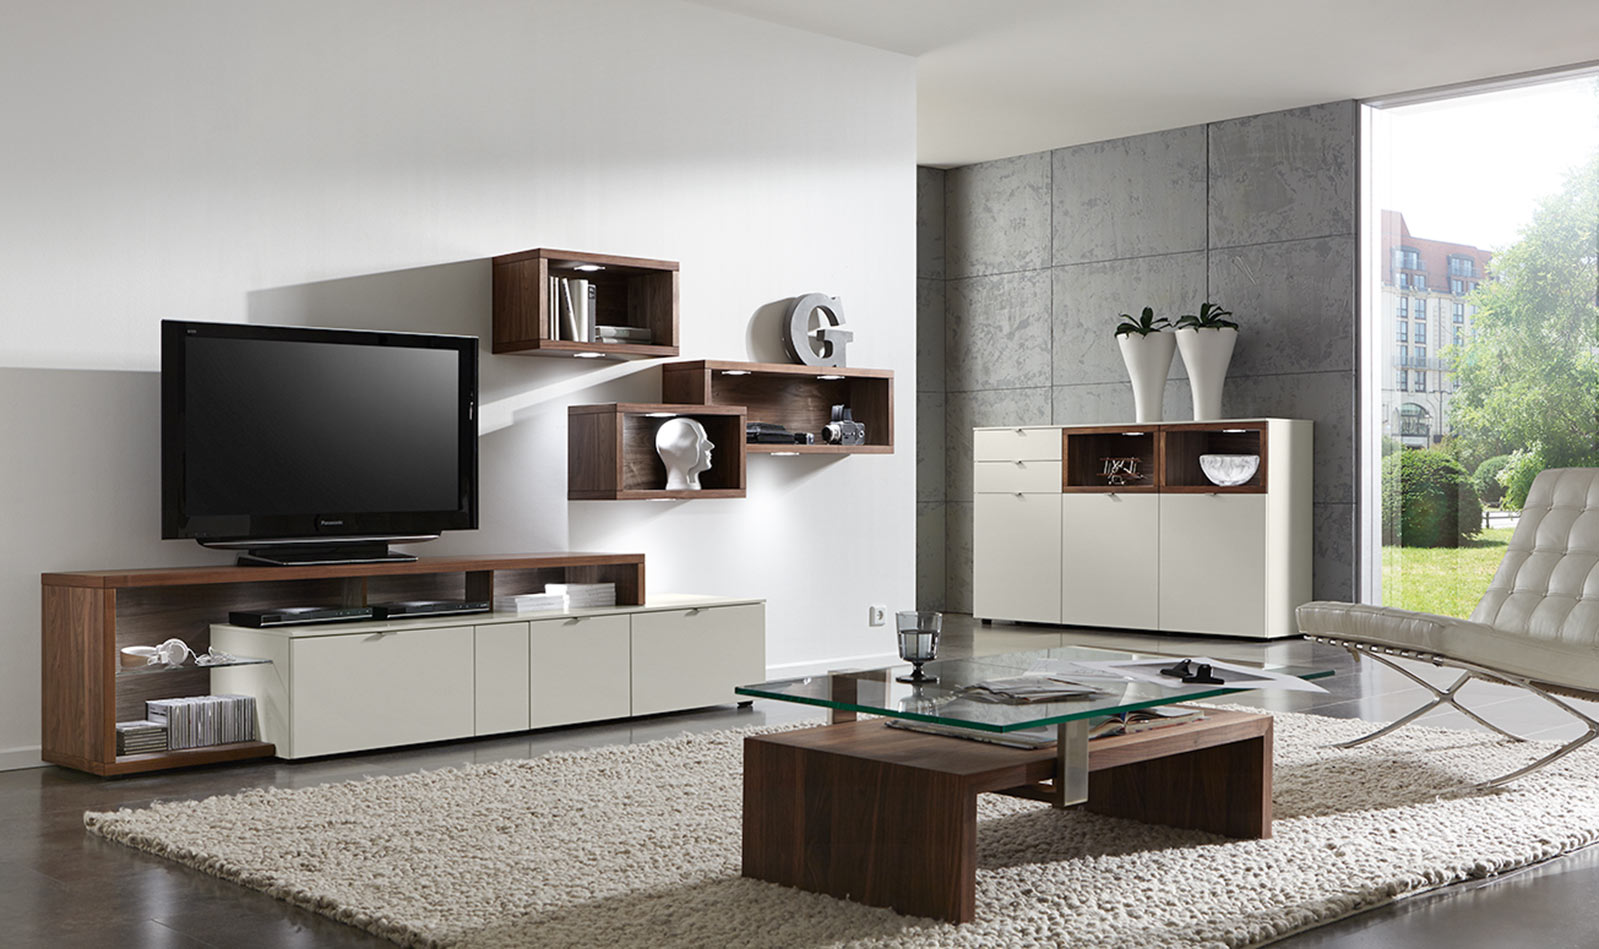 wohnzimmer programme andiamo venjakob m bel vorsprung durch design und qualit t. Black Bedroom Furniture Sets. Home Design Ideas